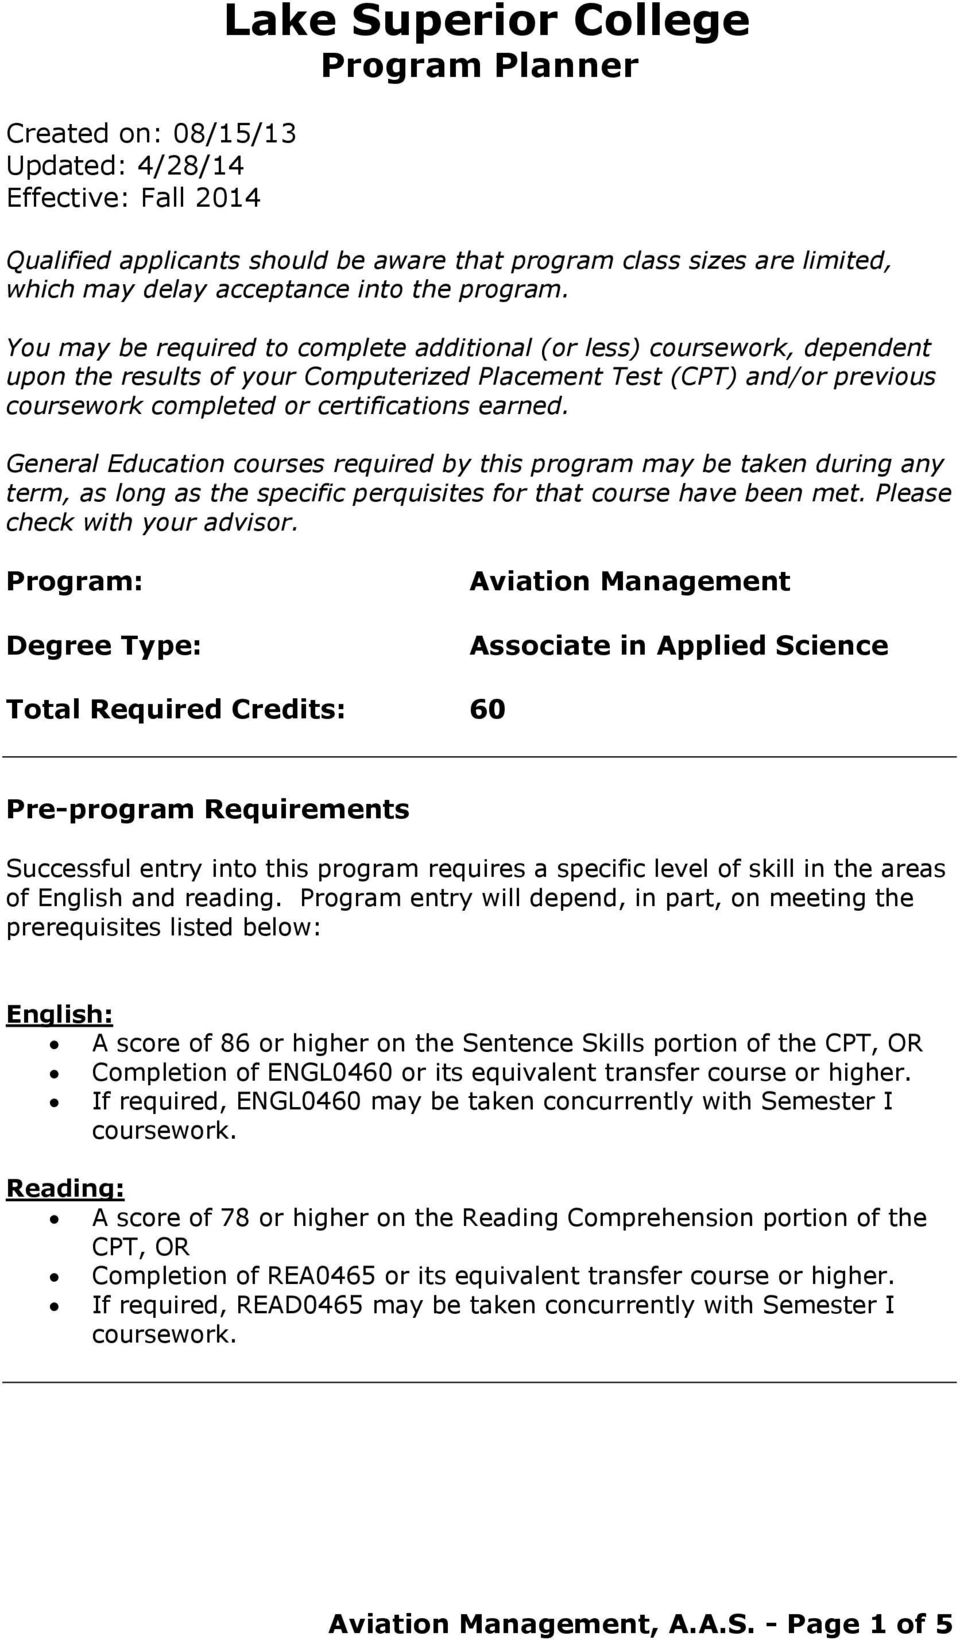 You may be required to complete additional (or less) coursework, dependent upon the results of your Computerized Placement Test (CPT) and/or previous coursework completed or certifications earned.